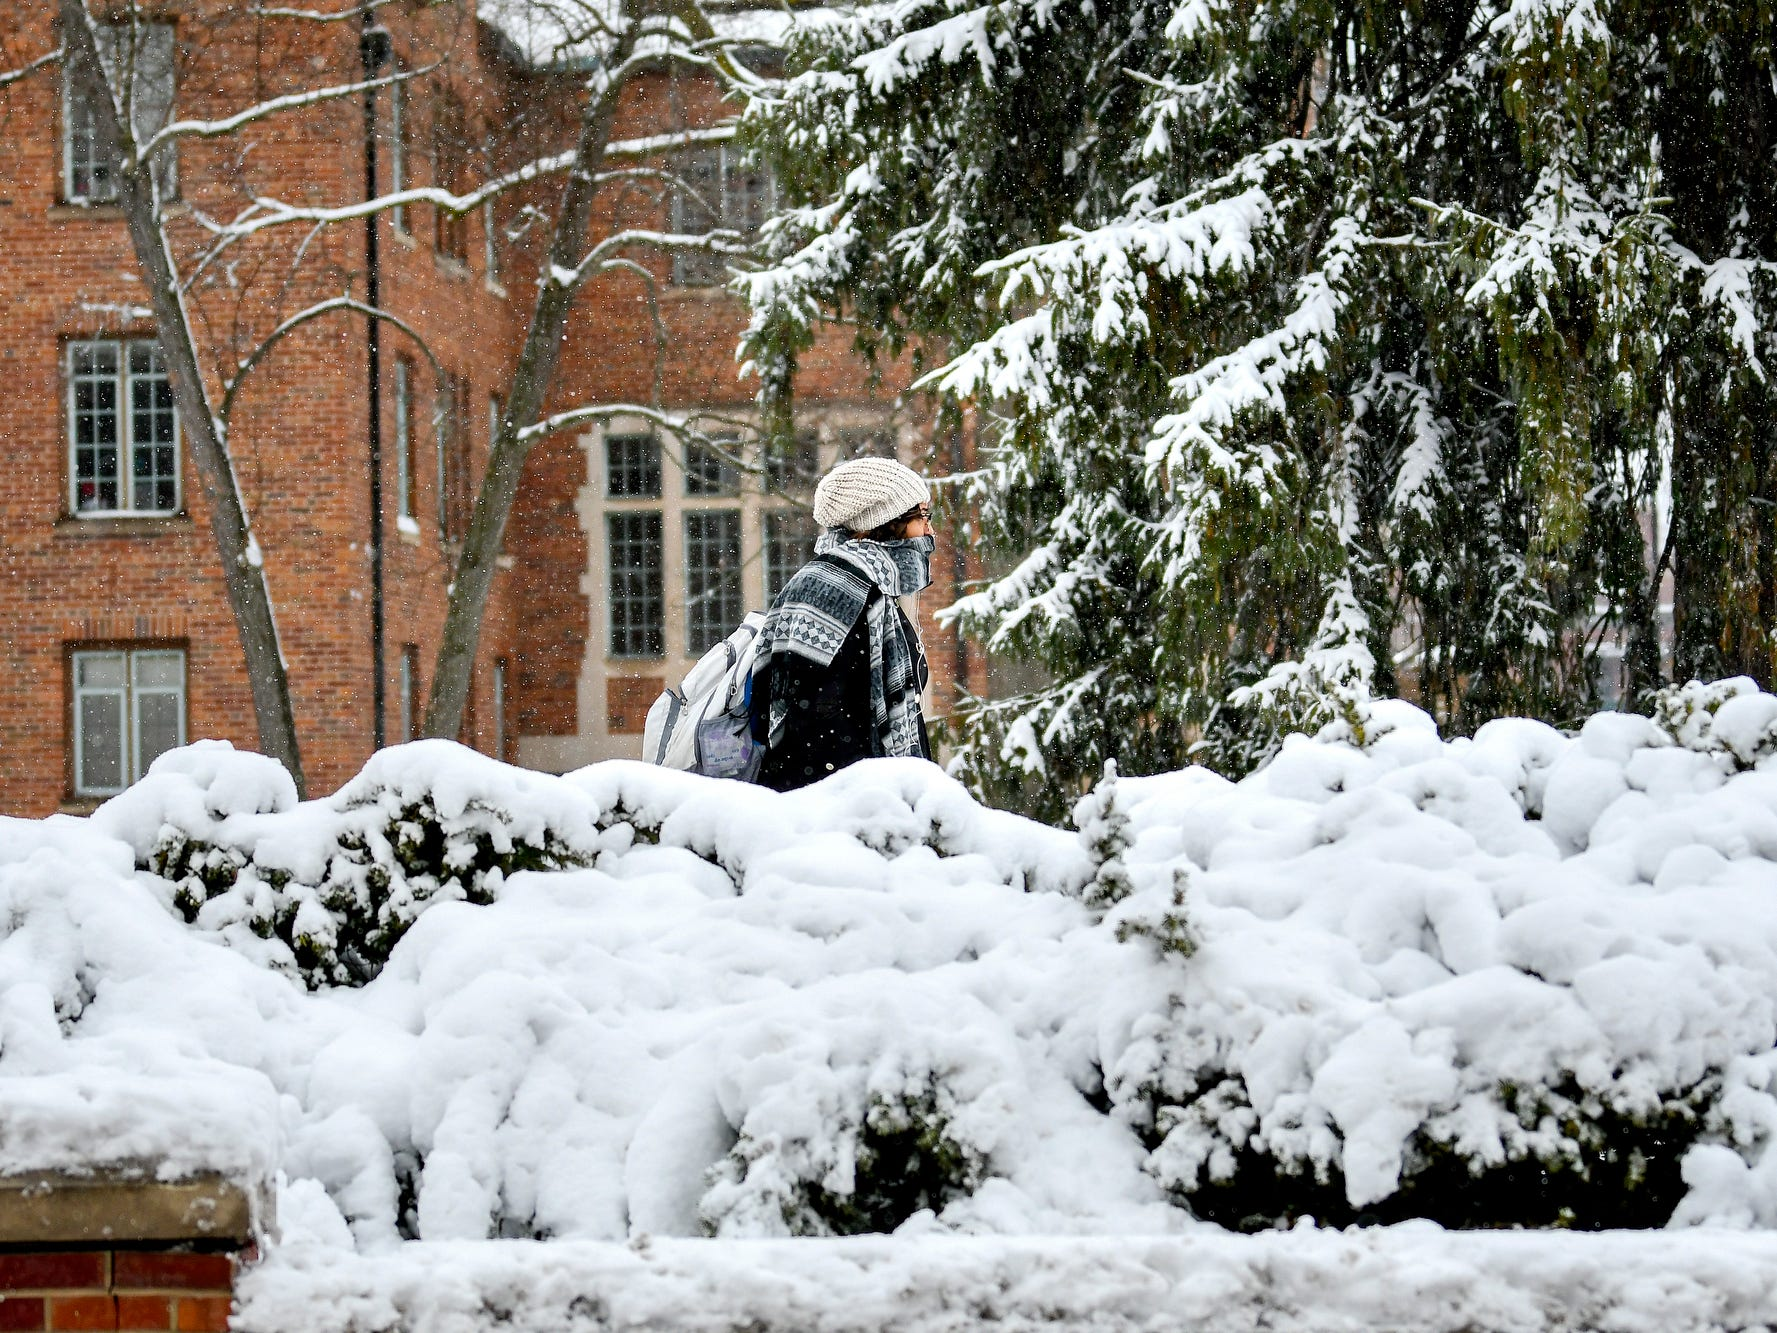 A pedestrian passes by snow-covered bushes outside Landon Hall on Nov. 26, 2018, on the Michigan State University campus in East Lansing, Mich.